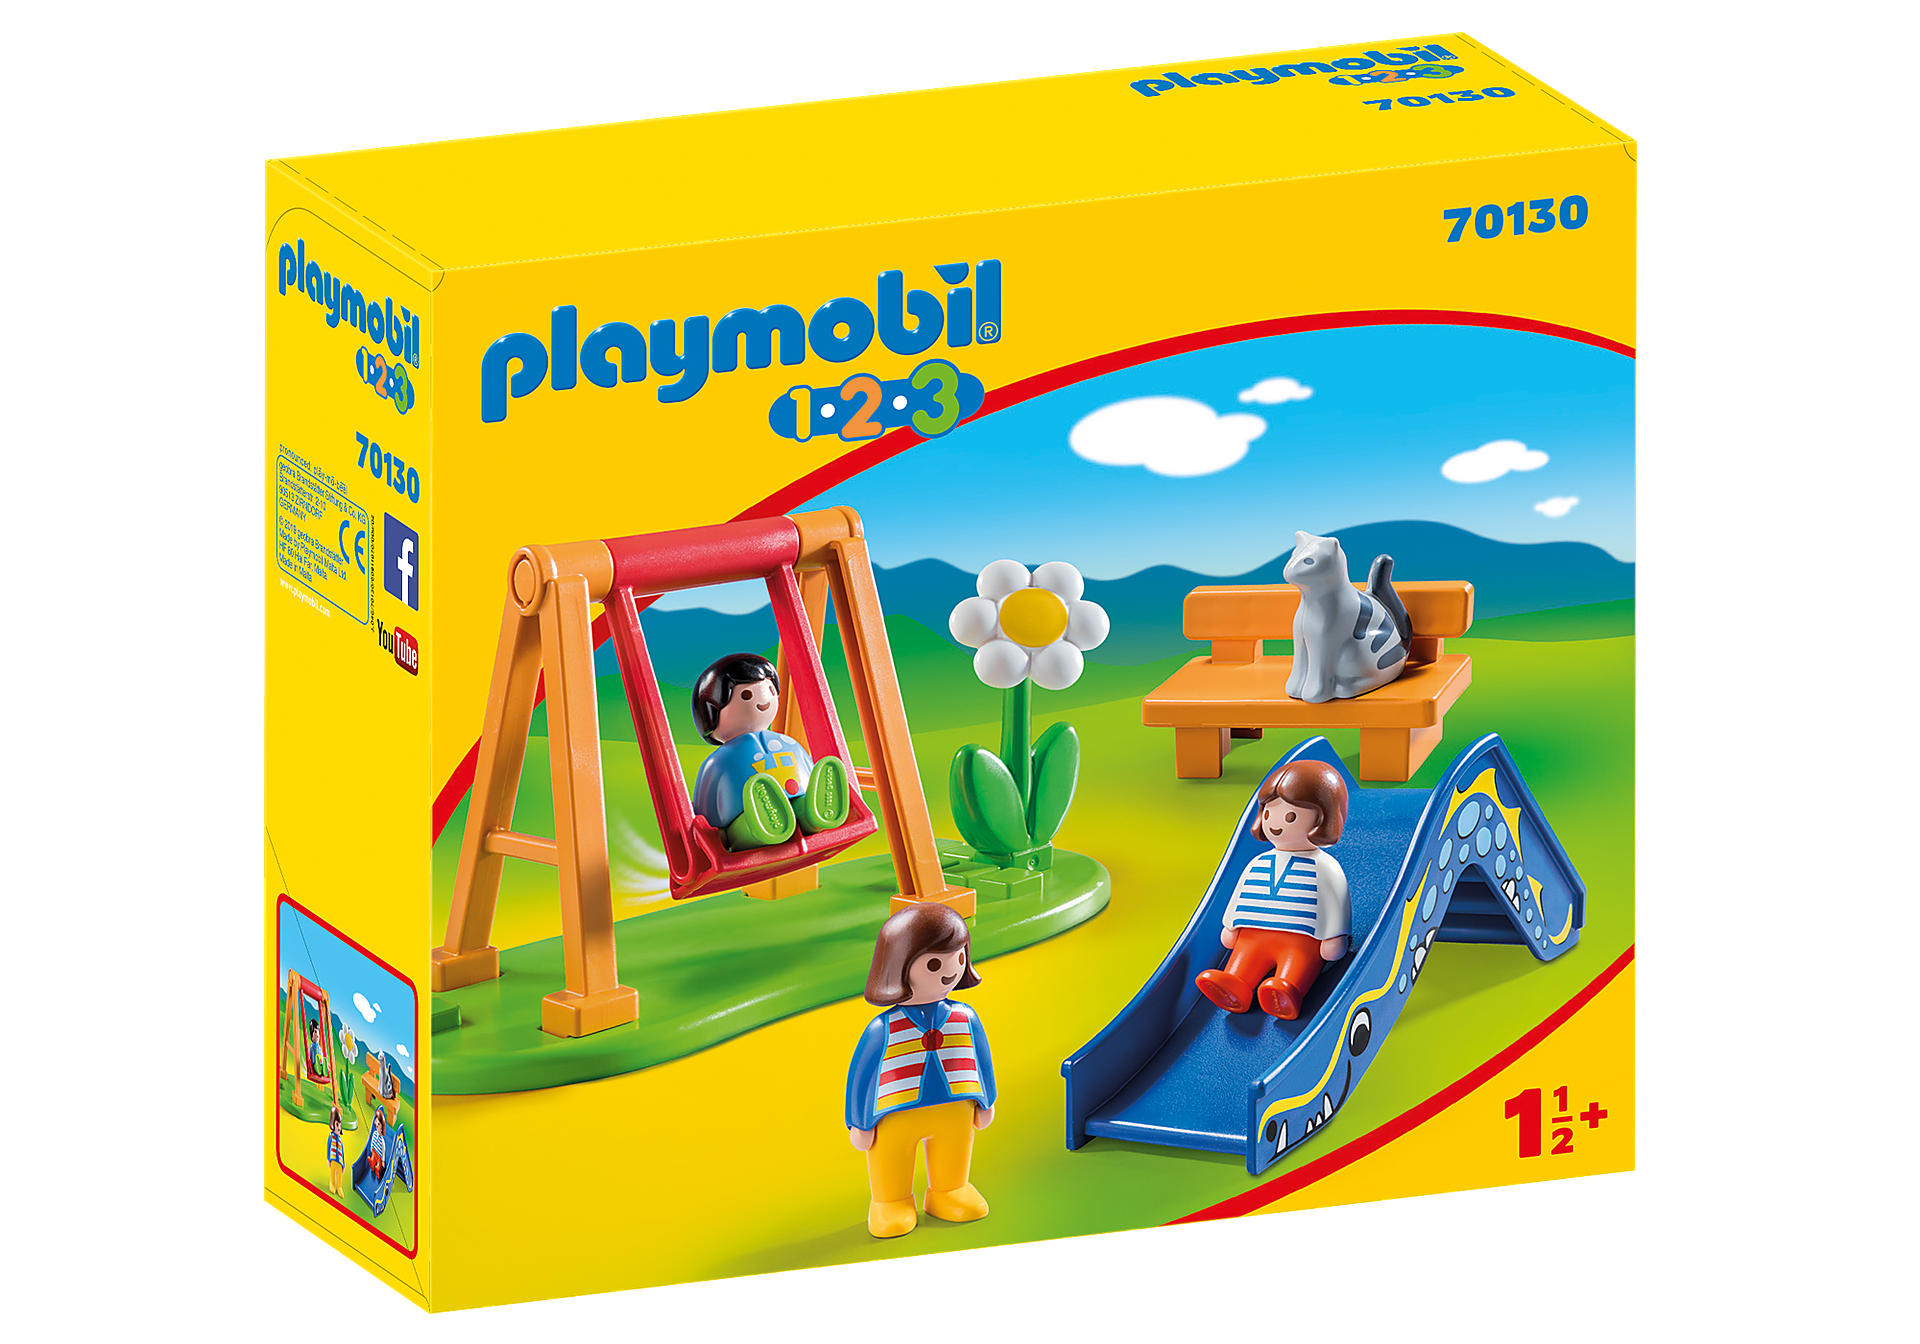 http://media.playmobil.com/i/playmobil/70130_product_box_front/Children's Playground